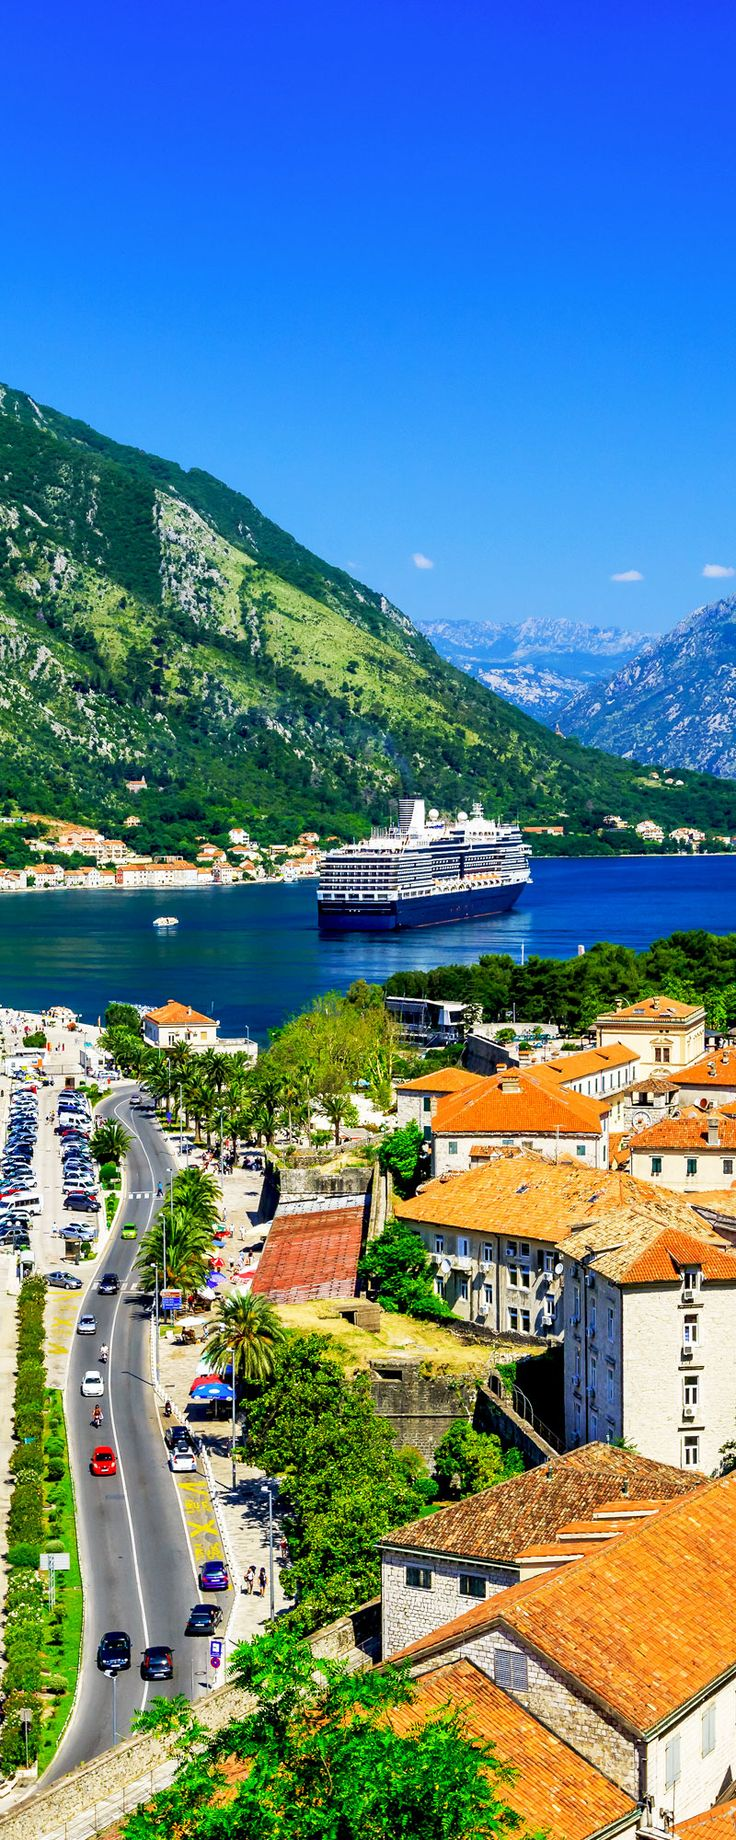 Would be perfect for a vacation stay at Kotor, Montenegro.  This is why we save!#ThursdayVacayDay